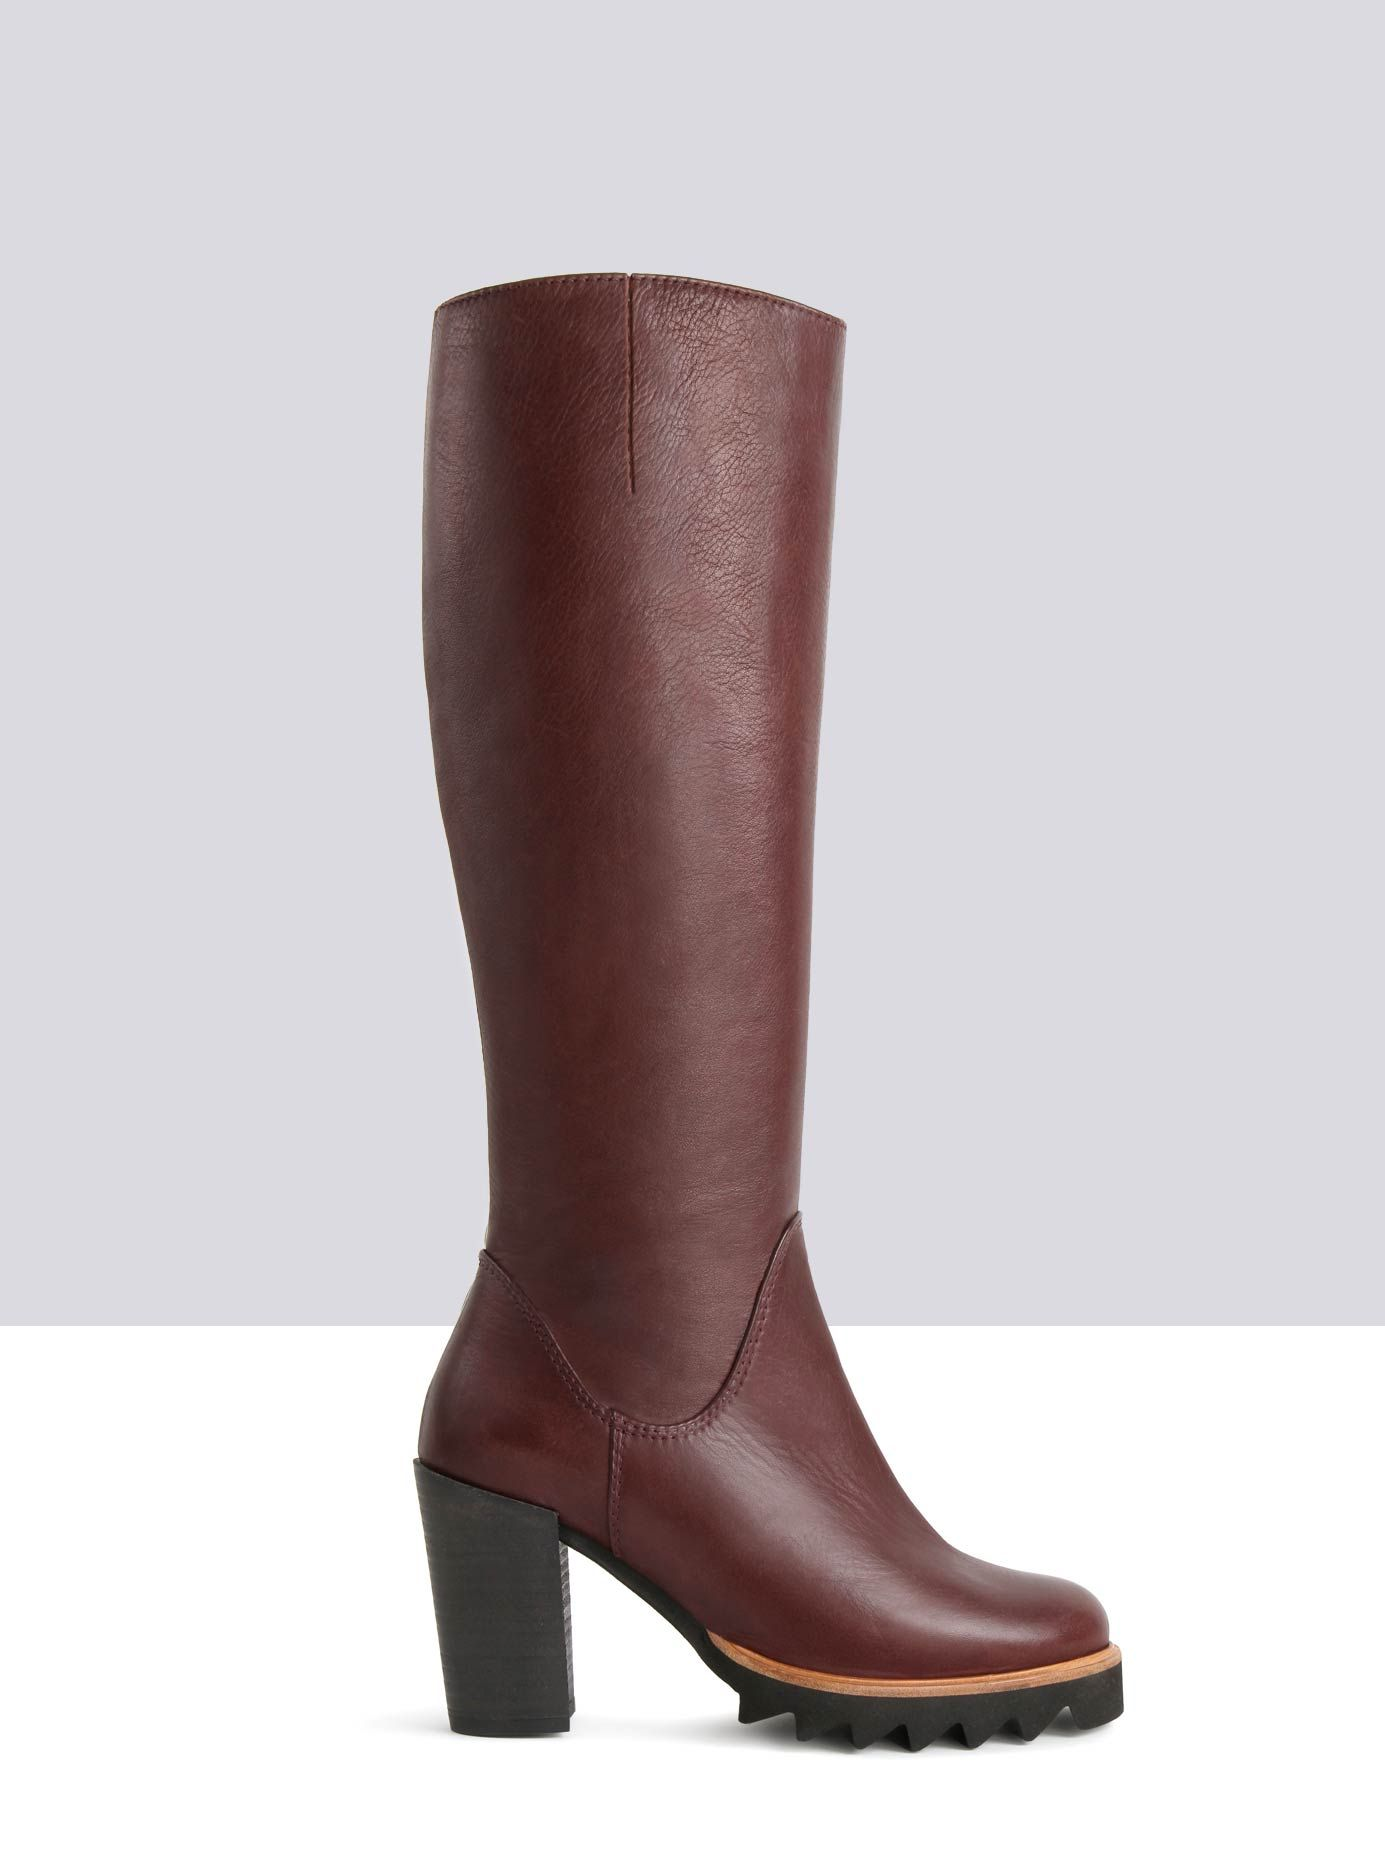 544056bf431a Regimentals - Knee High Boots in Black Leather by Ted and Muffy US ...